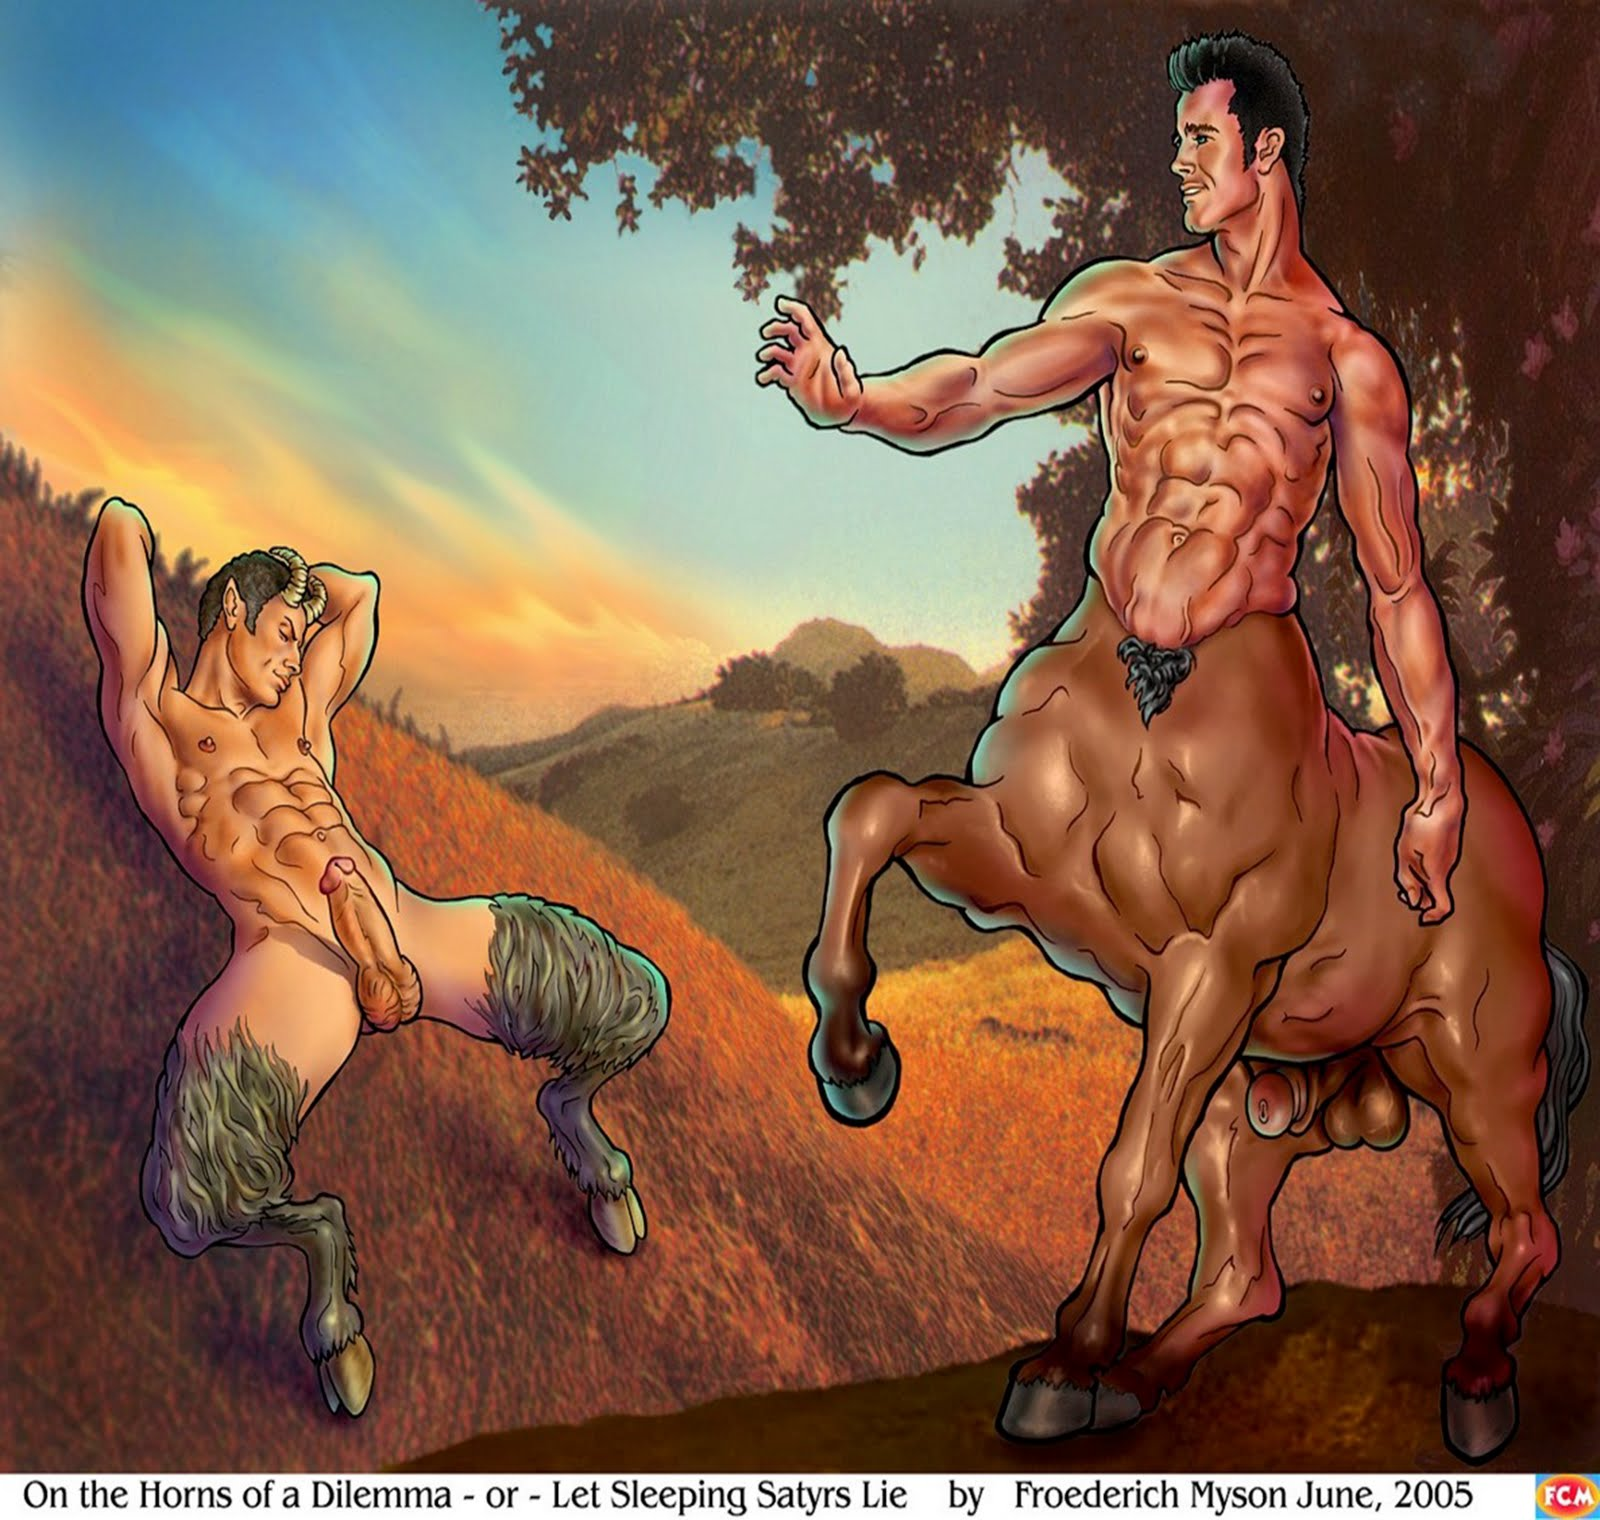 from Alec satyr and centaur gay